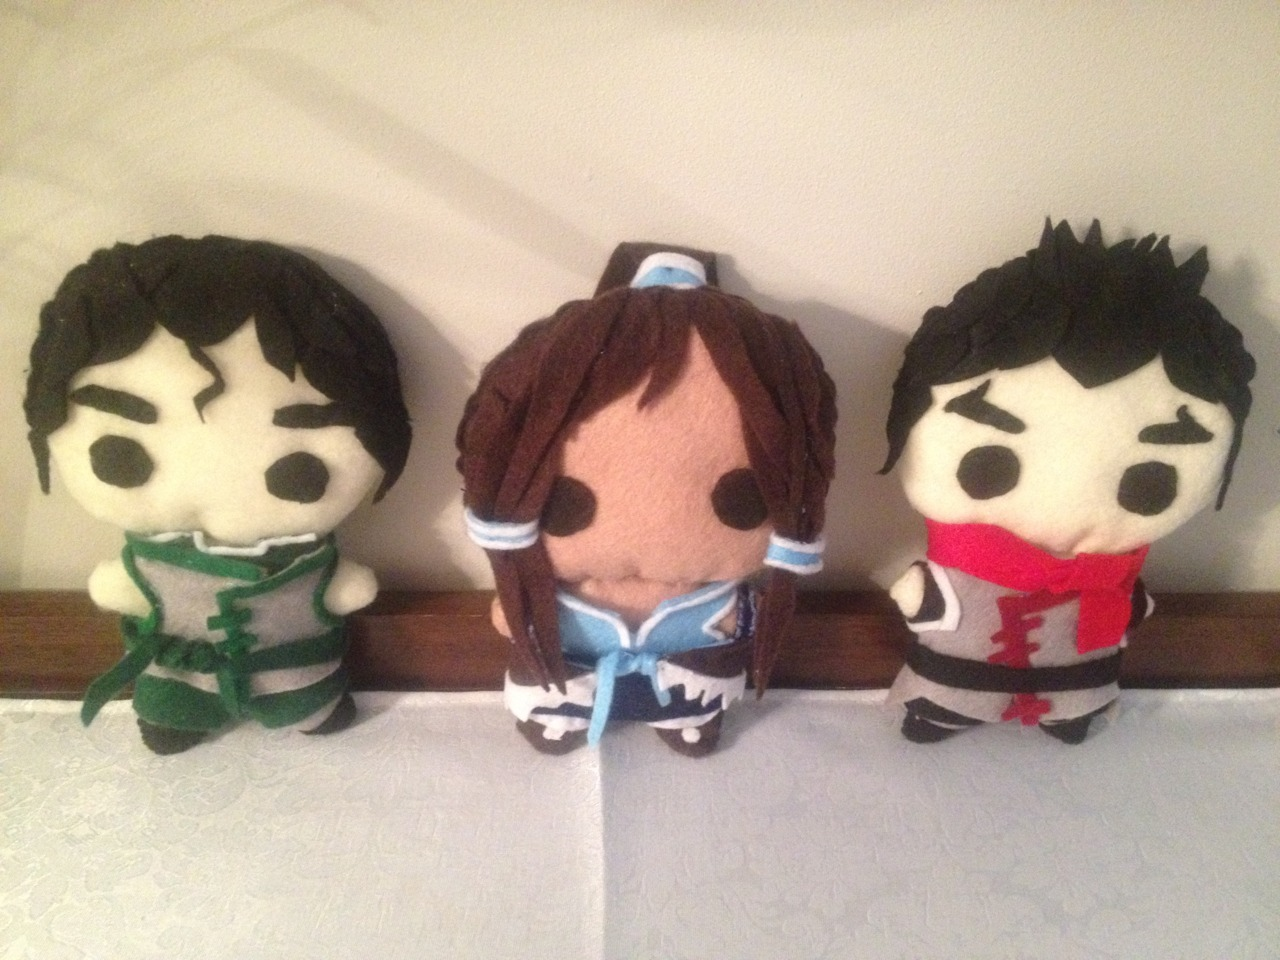 tea-nah:  Finished the Legend of Korra characters. Bolin, Korra and Mako I hope these little guys will be happy with their new owner :) I made them for my friend, and she loves them :) I might make some in the future of other characters (I might get some inspiration from the later episodes, and might make some doubles later) Hope you guys enjoy.